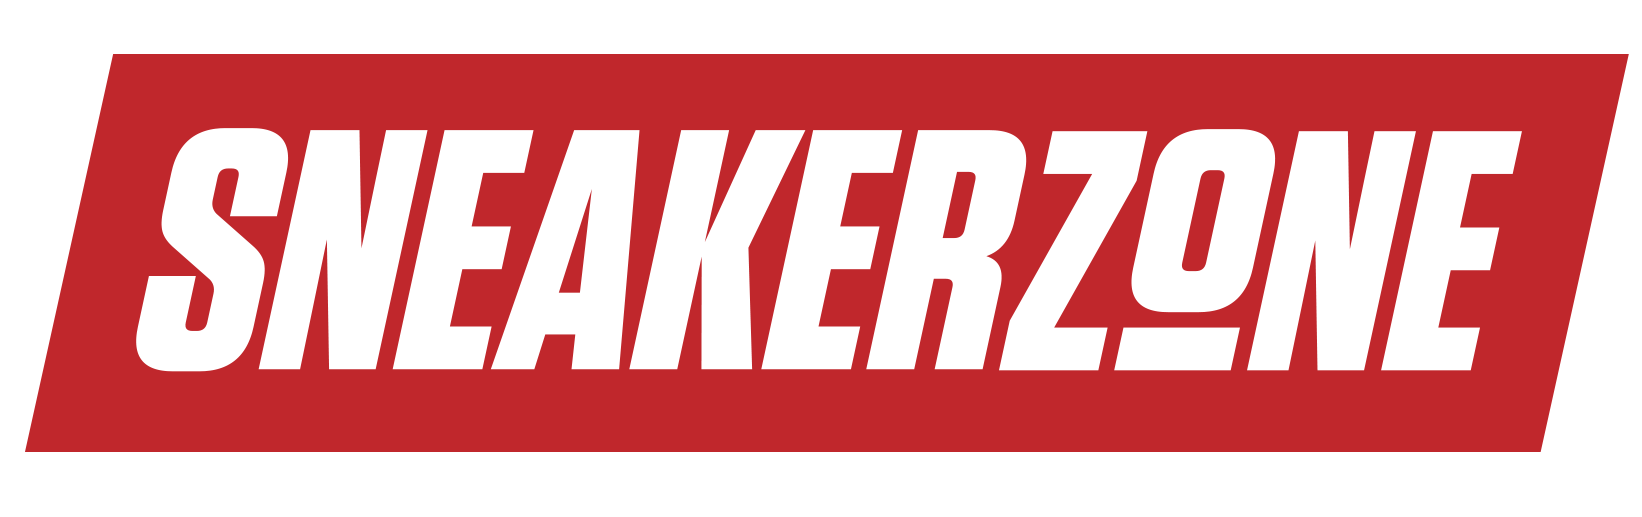 Sneakerzone Shop